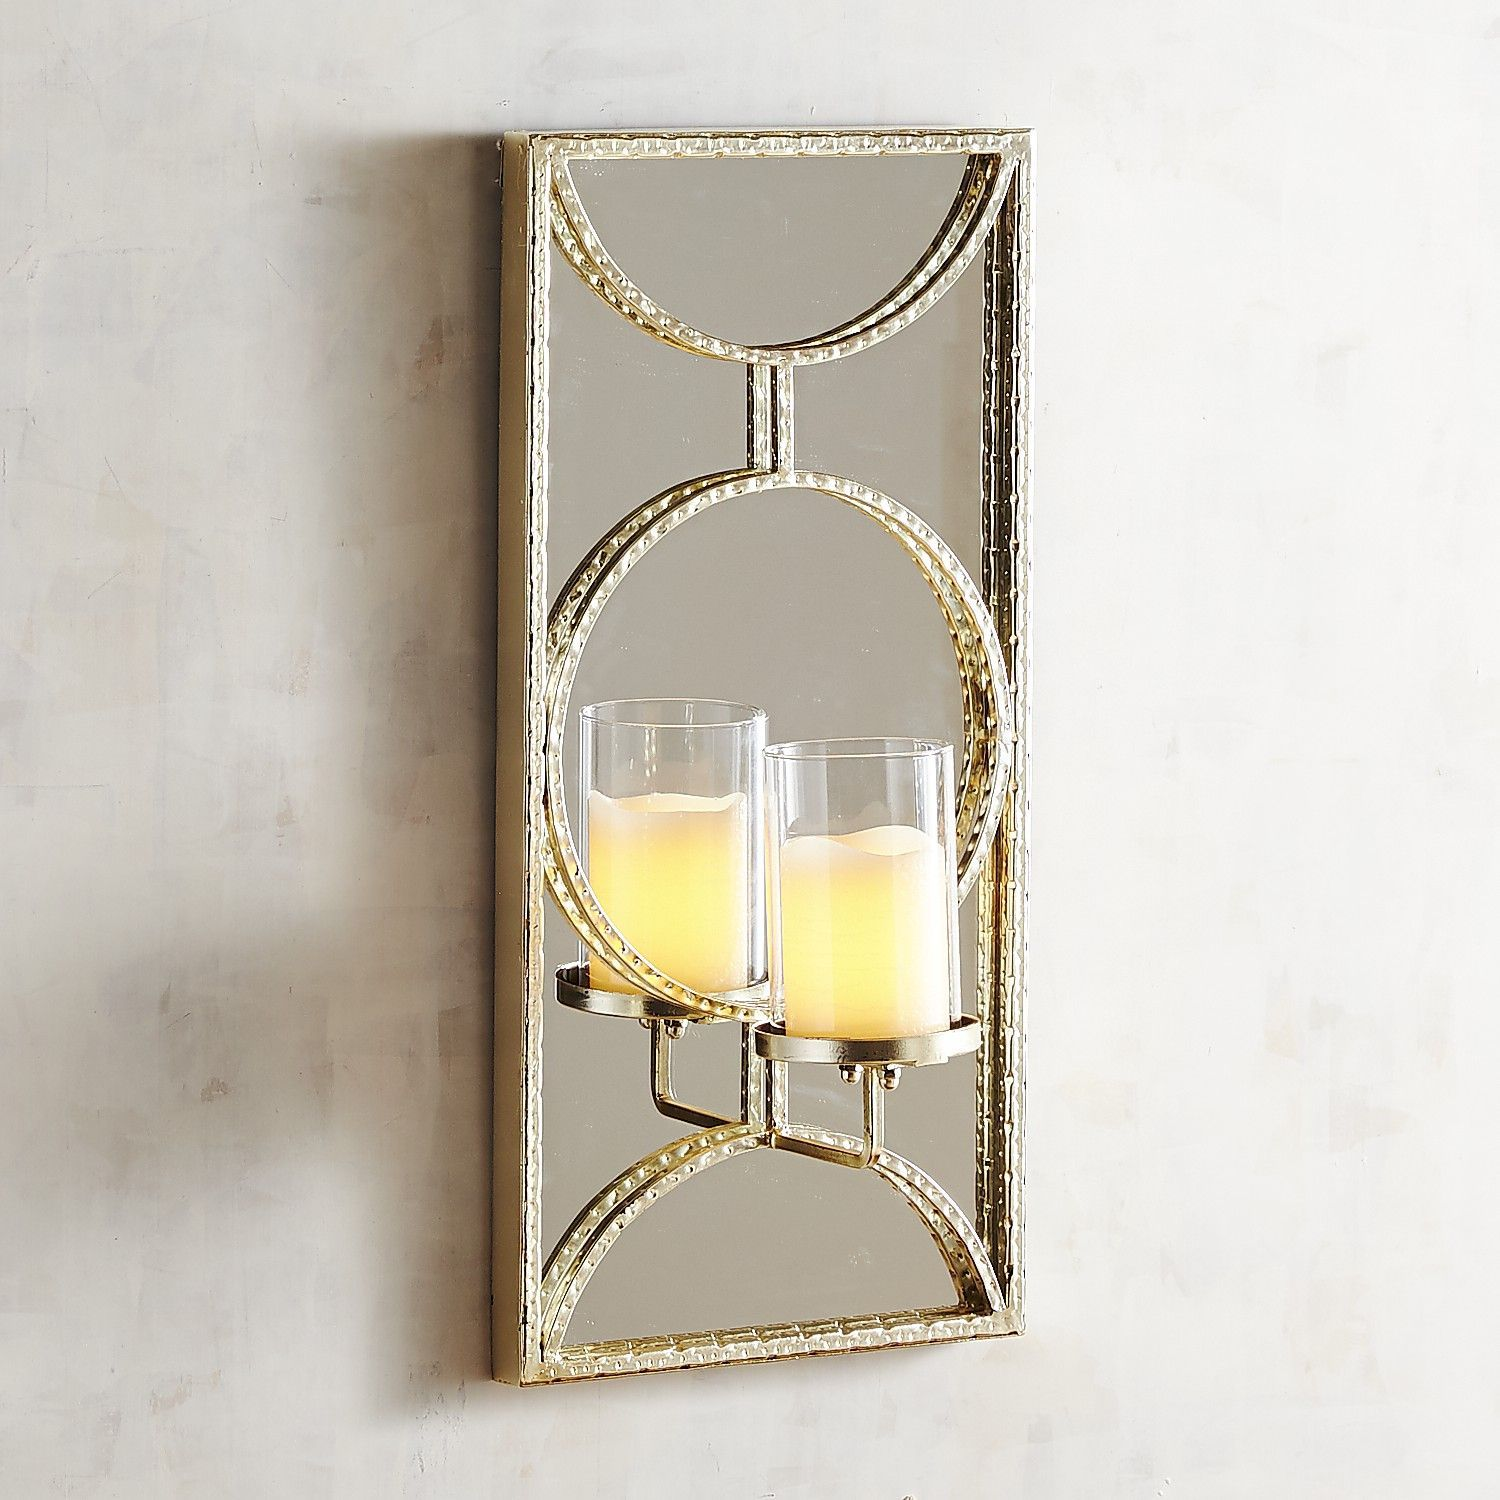 Champagne mirrored candle holder wall sconce